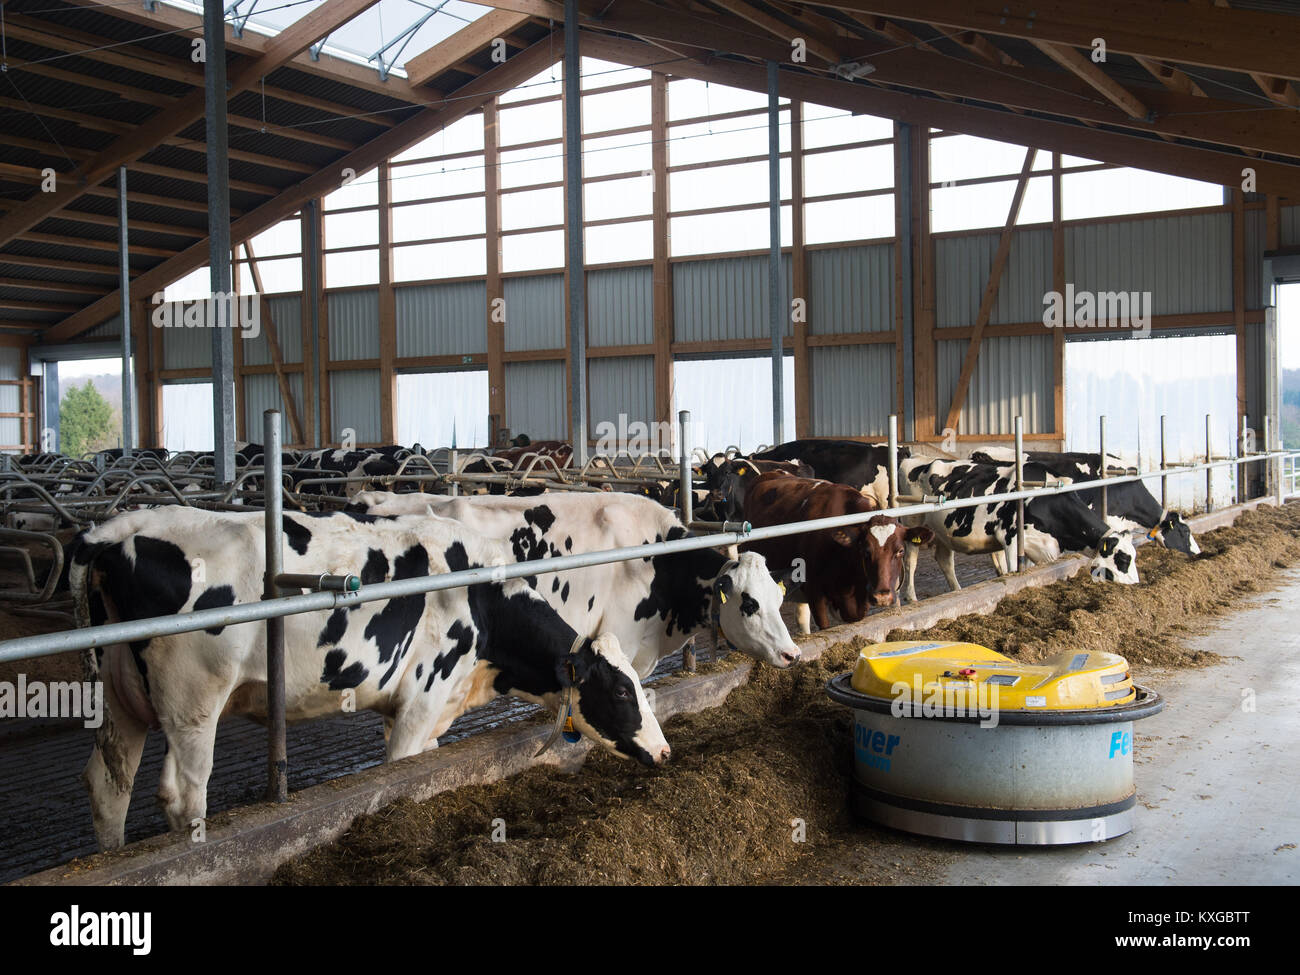 Neunkirchen-Seelscheid, Germany. 08th Jan, 2018. Farmer Marcel Andree's cows standing in a stall in Neunkirchen - Stock Image